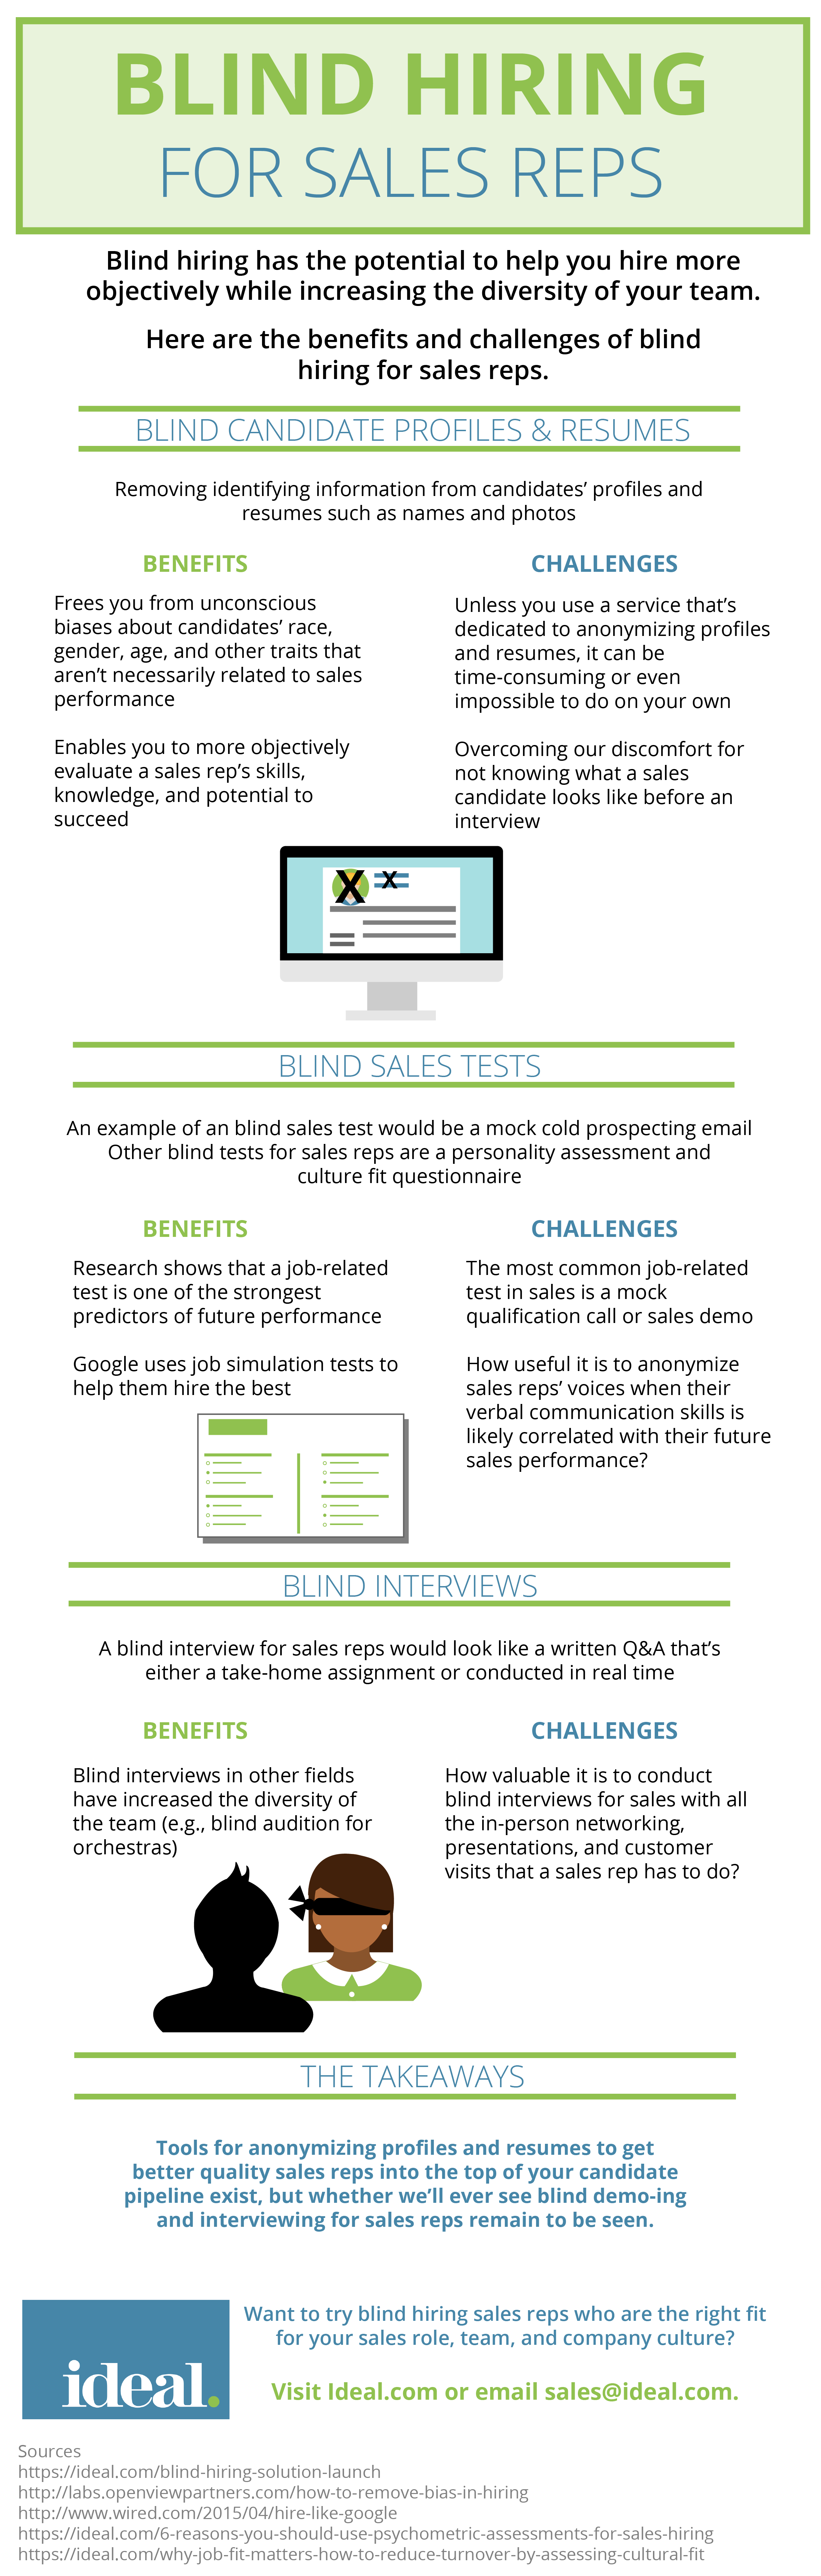 the pros and cons of blind hiring sales reps infographic